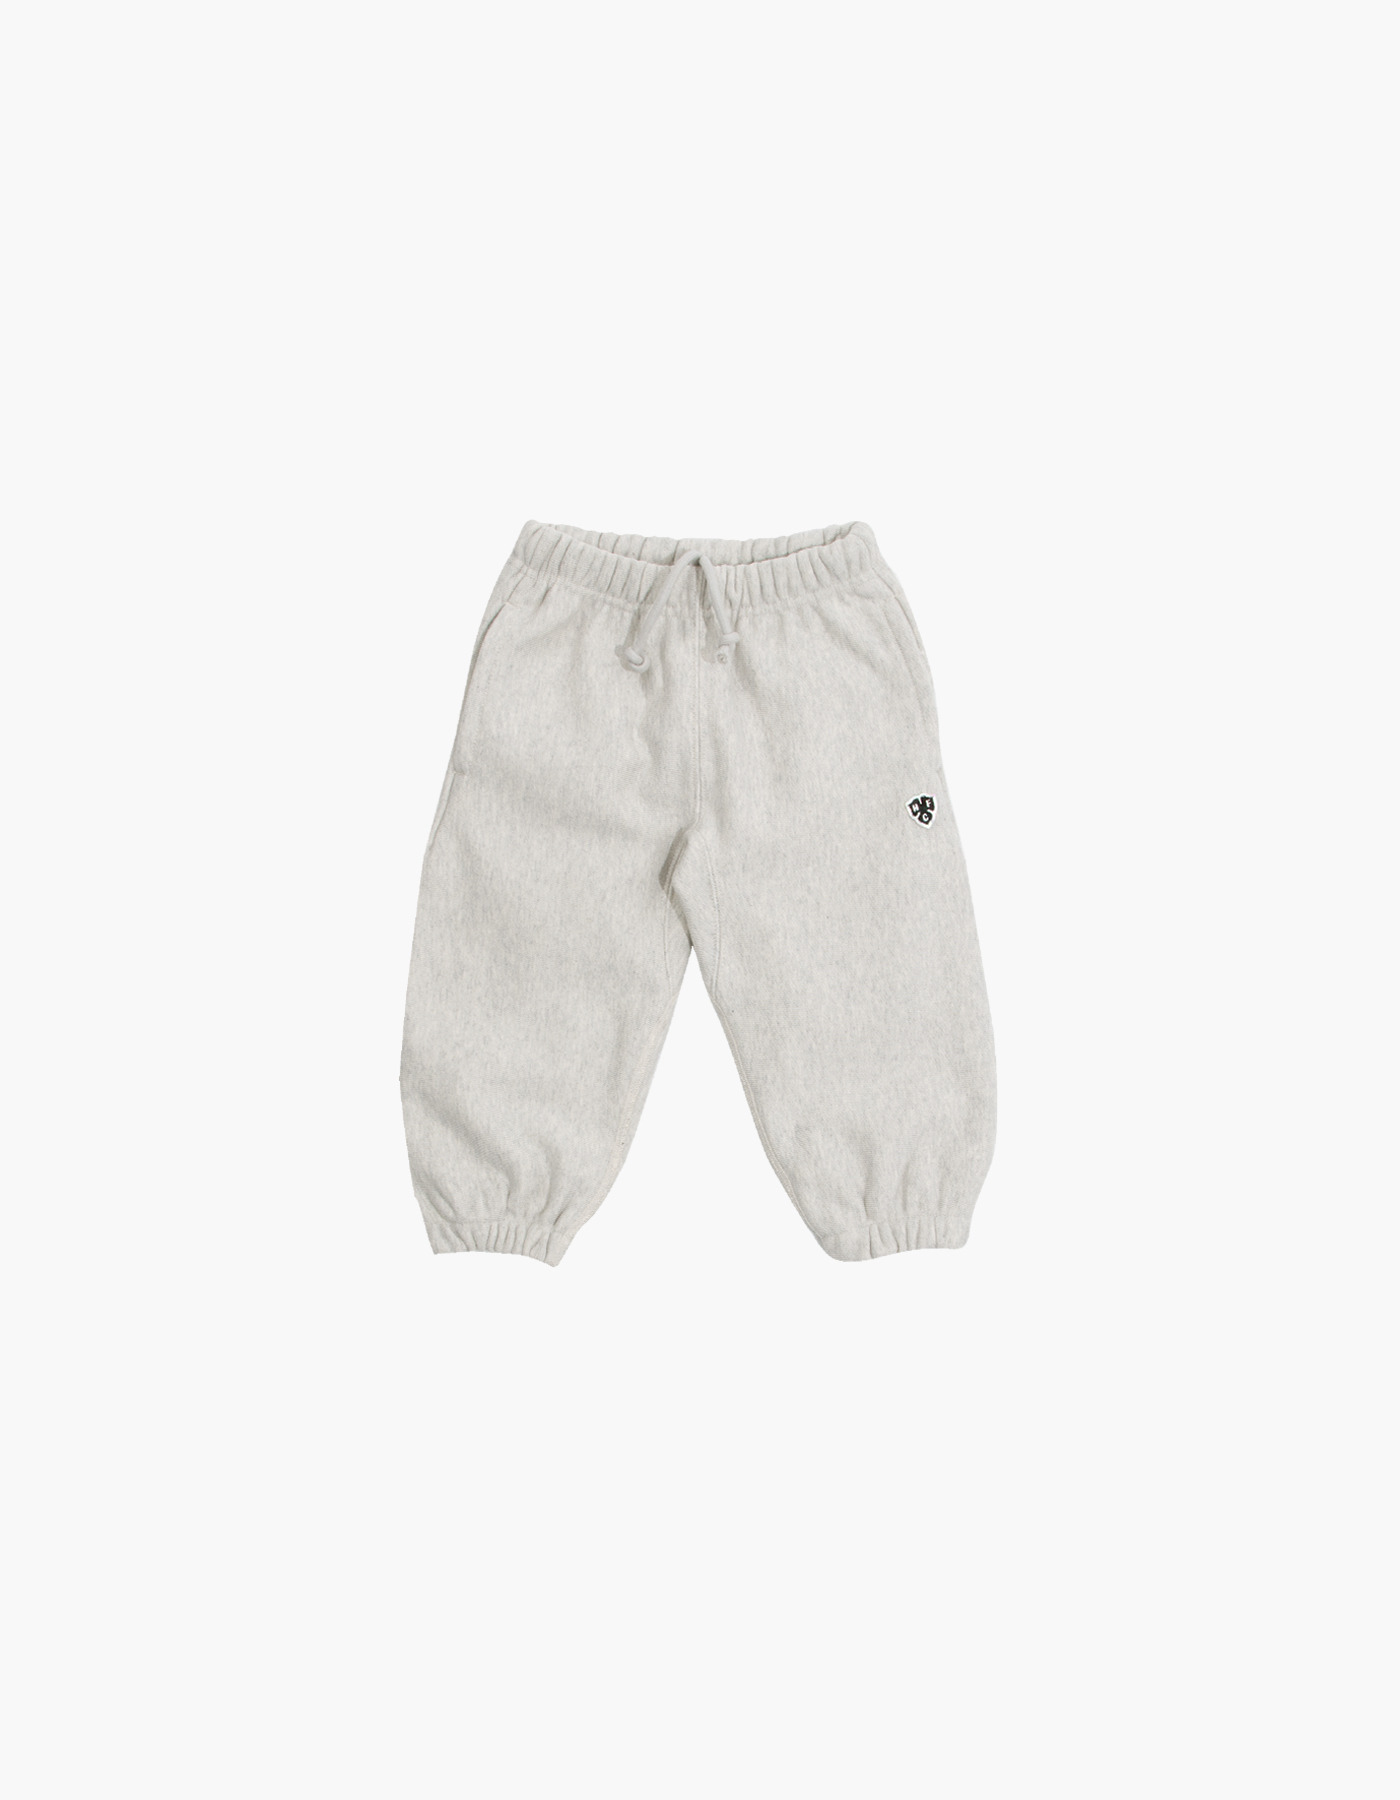 231 KIDS HFC SWEATPANTS / M.GREY (1%)